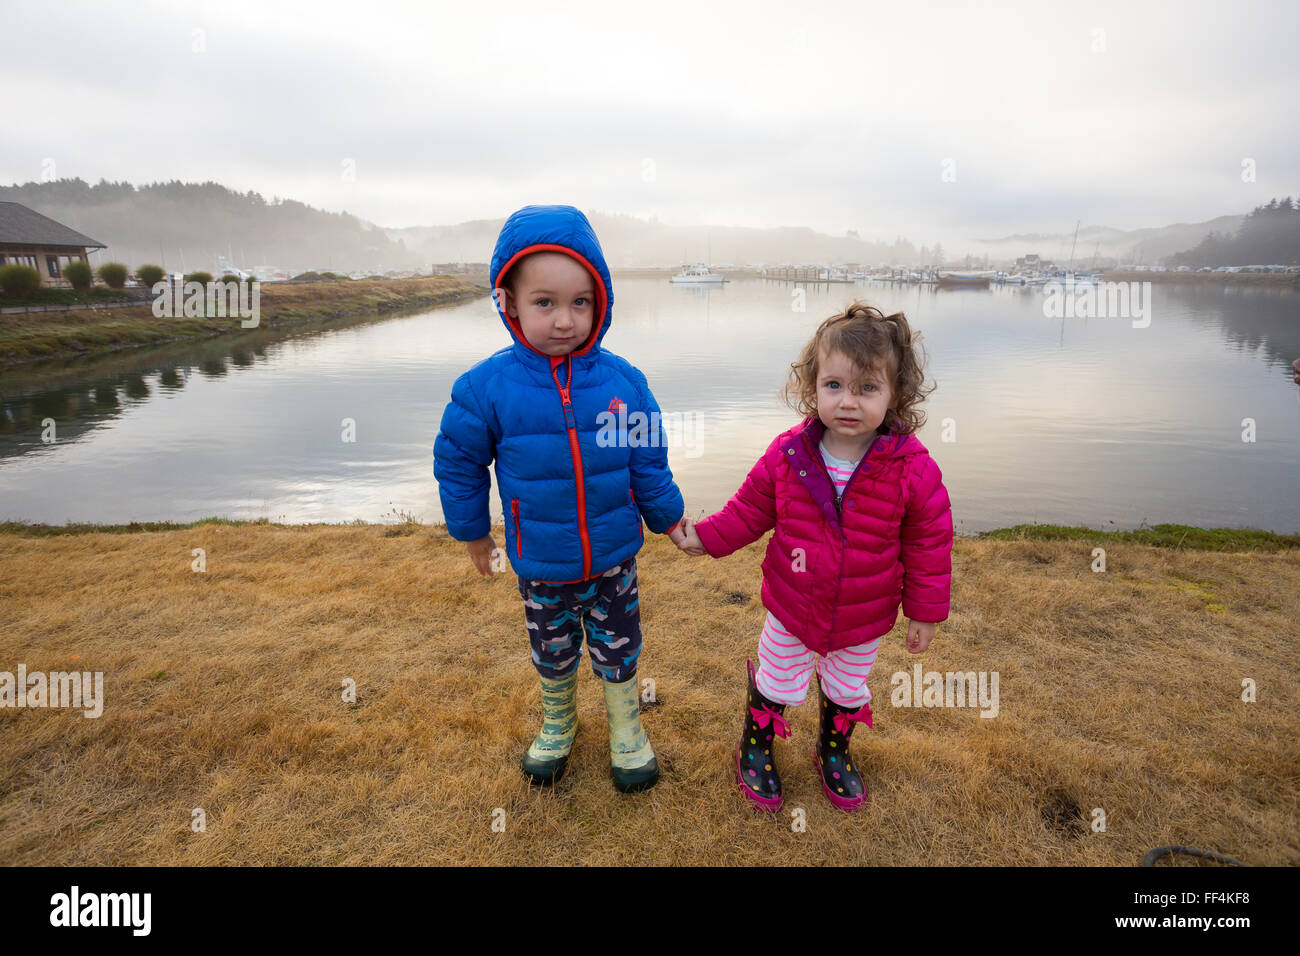 Winchester Bay Stock Photos & Winchester Bay Stock Images - Alamy